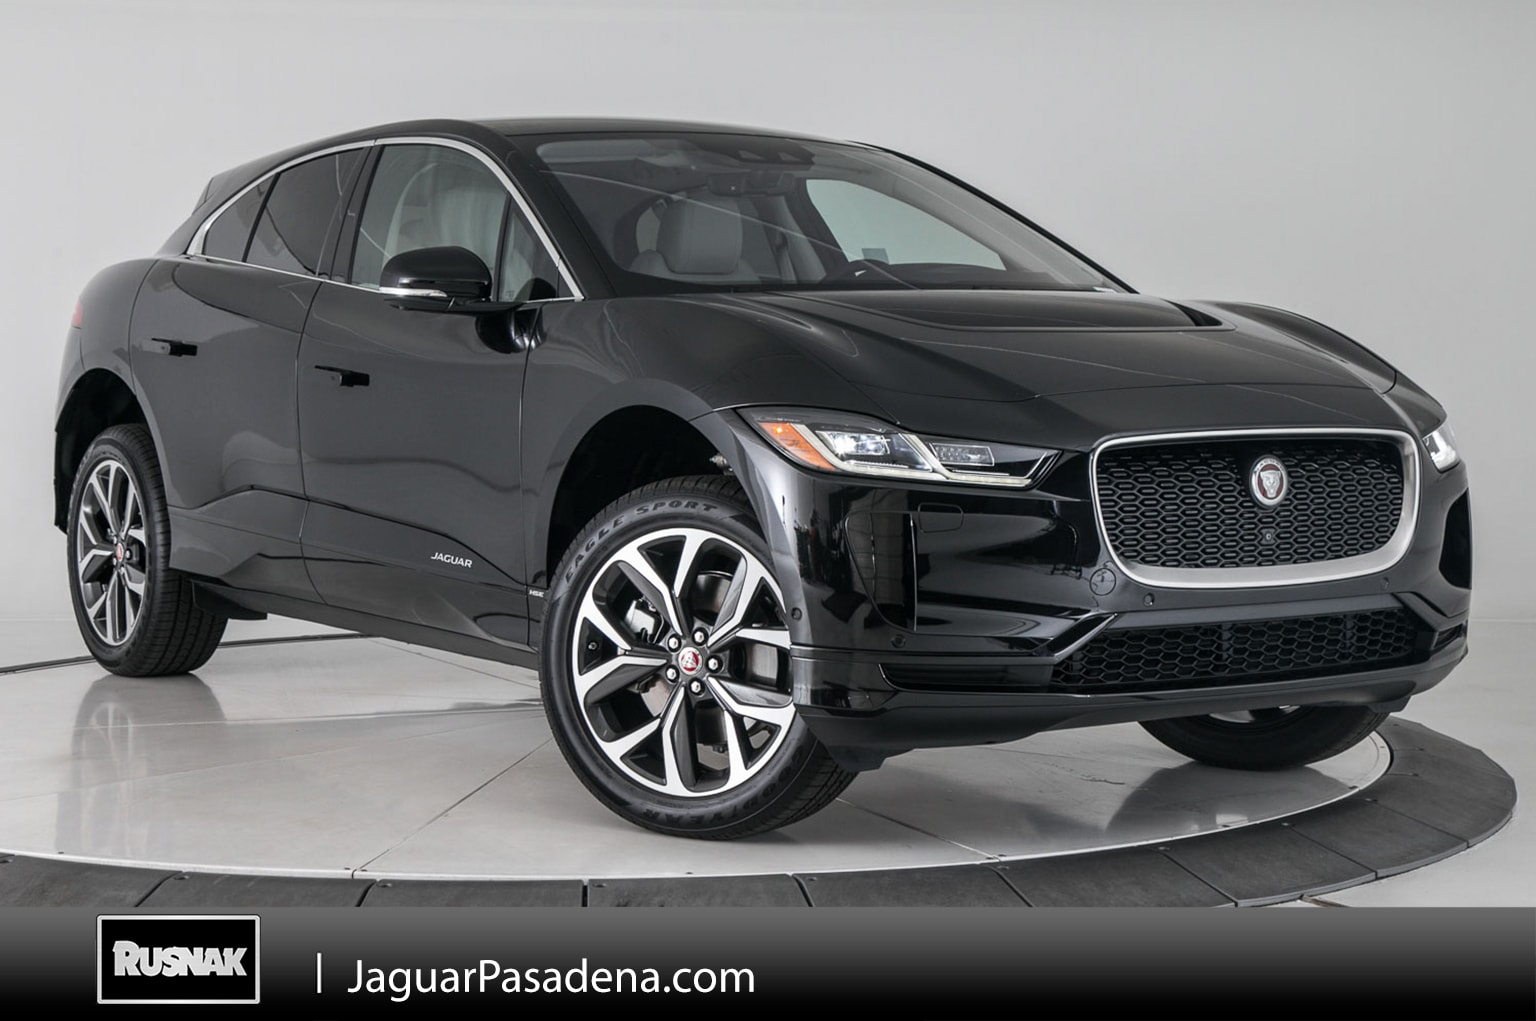 New 2019 Jaguar I-PACE HSE SUV For Sale Los Angeles California